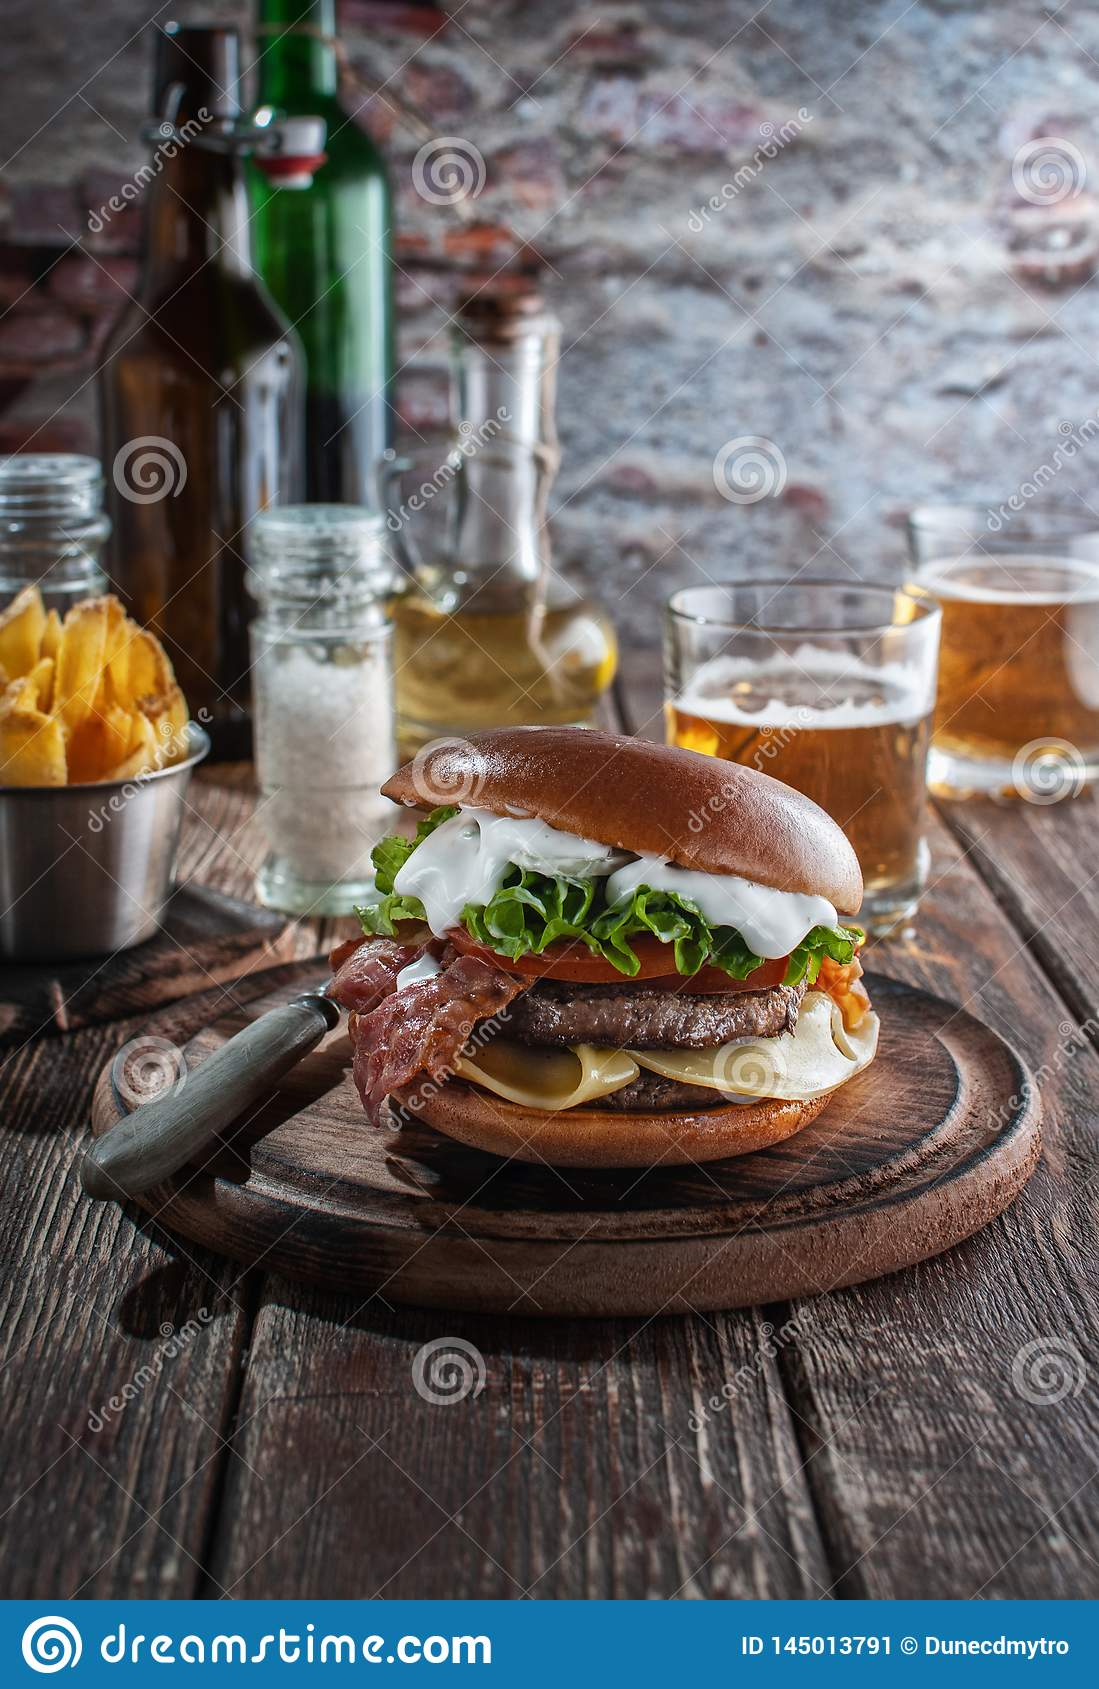 Piano burger with bacon and cutlet with cheese, tomato, greens.